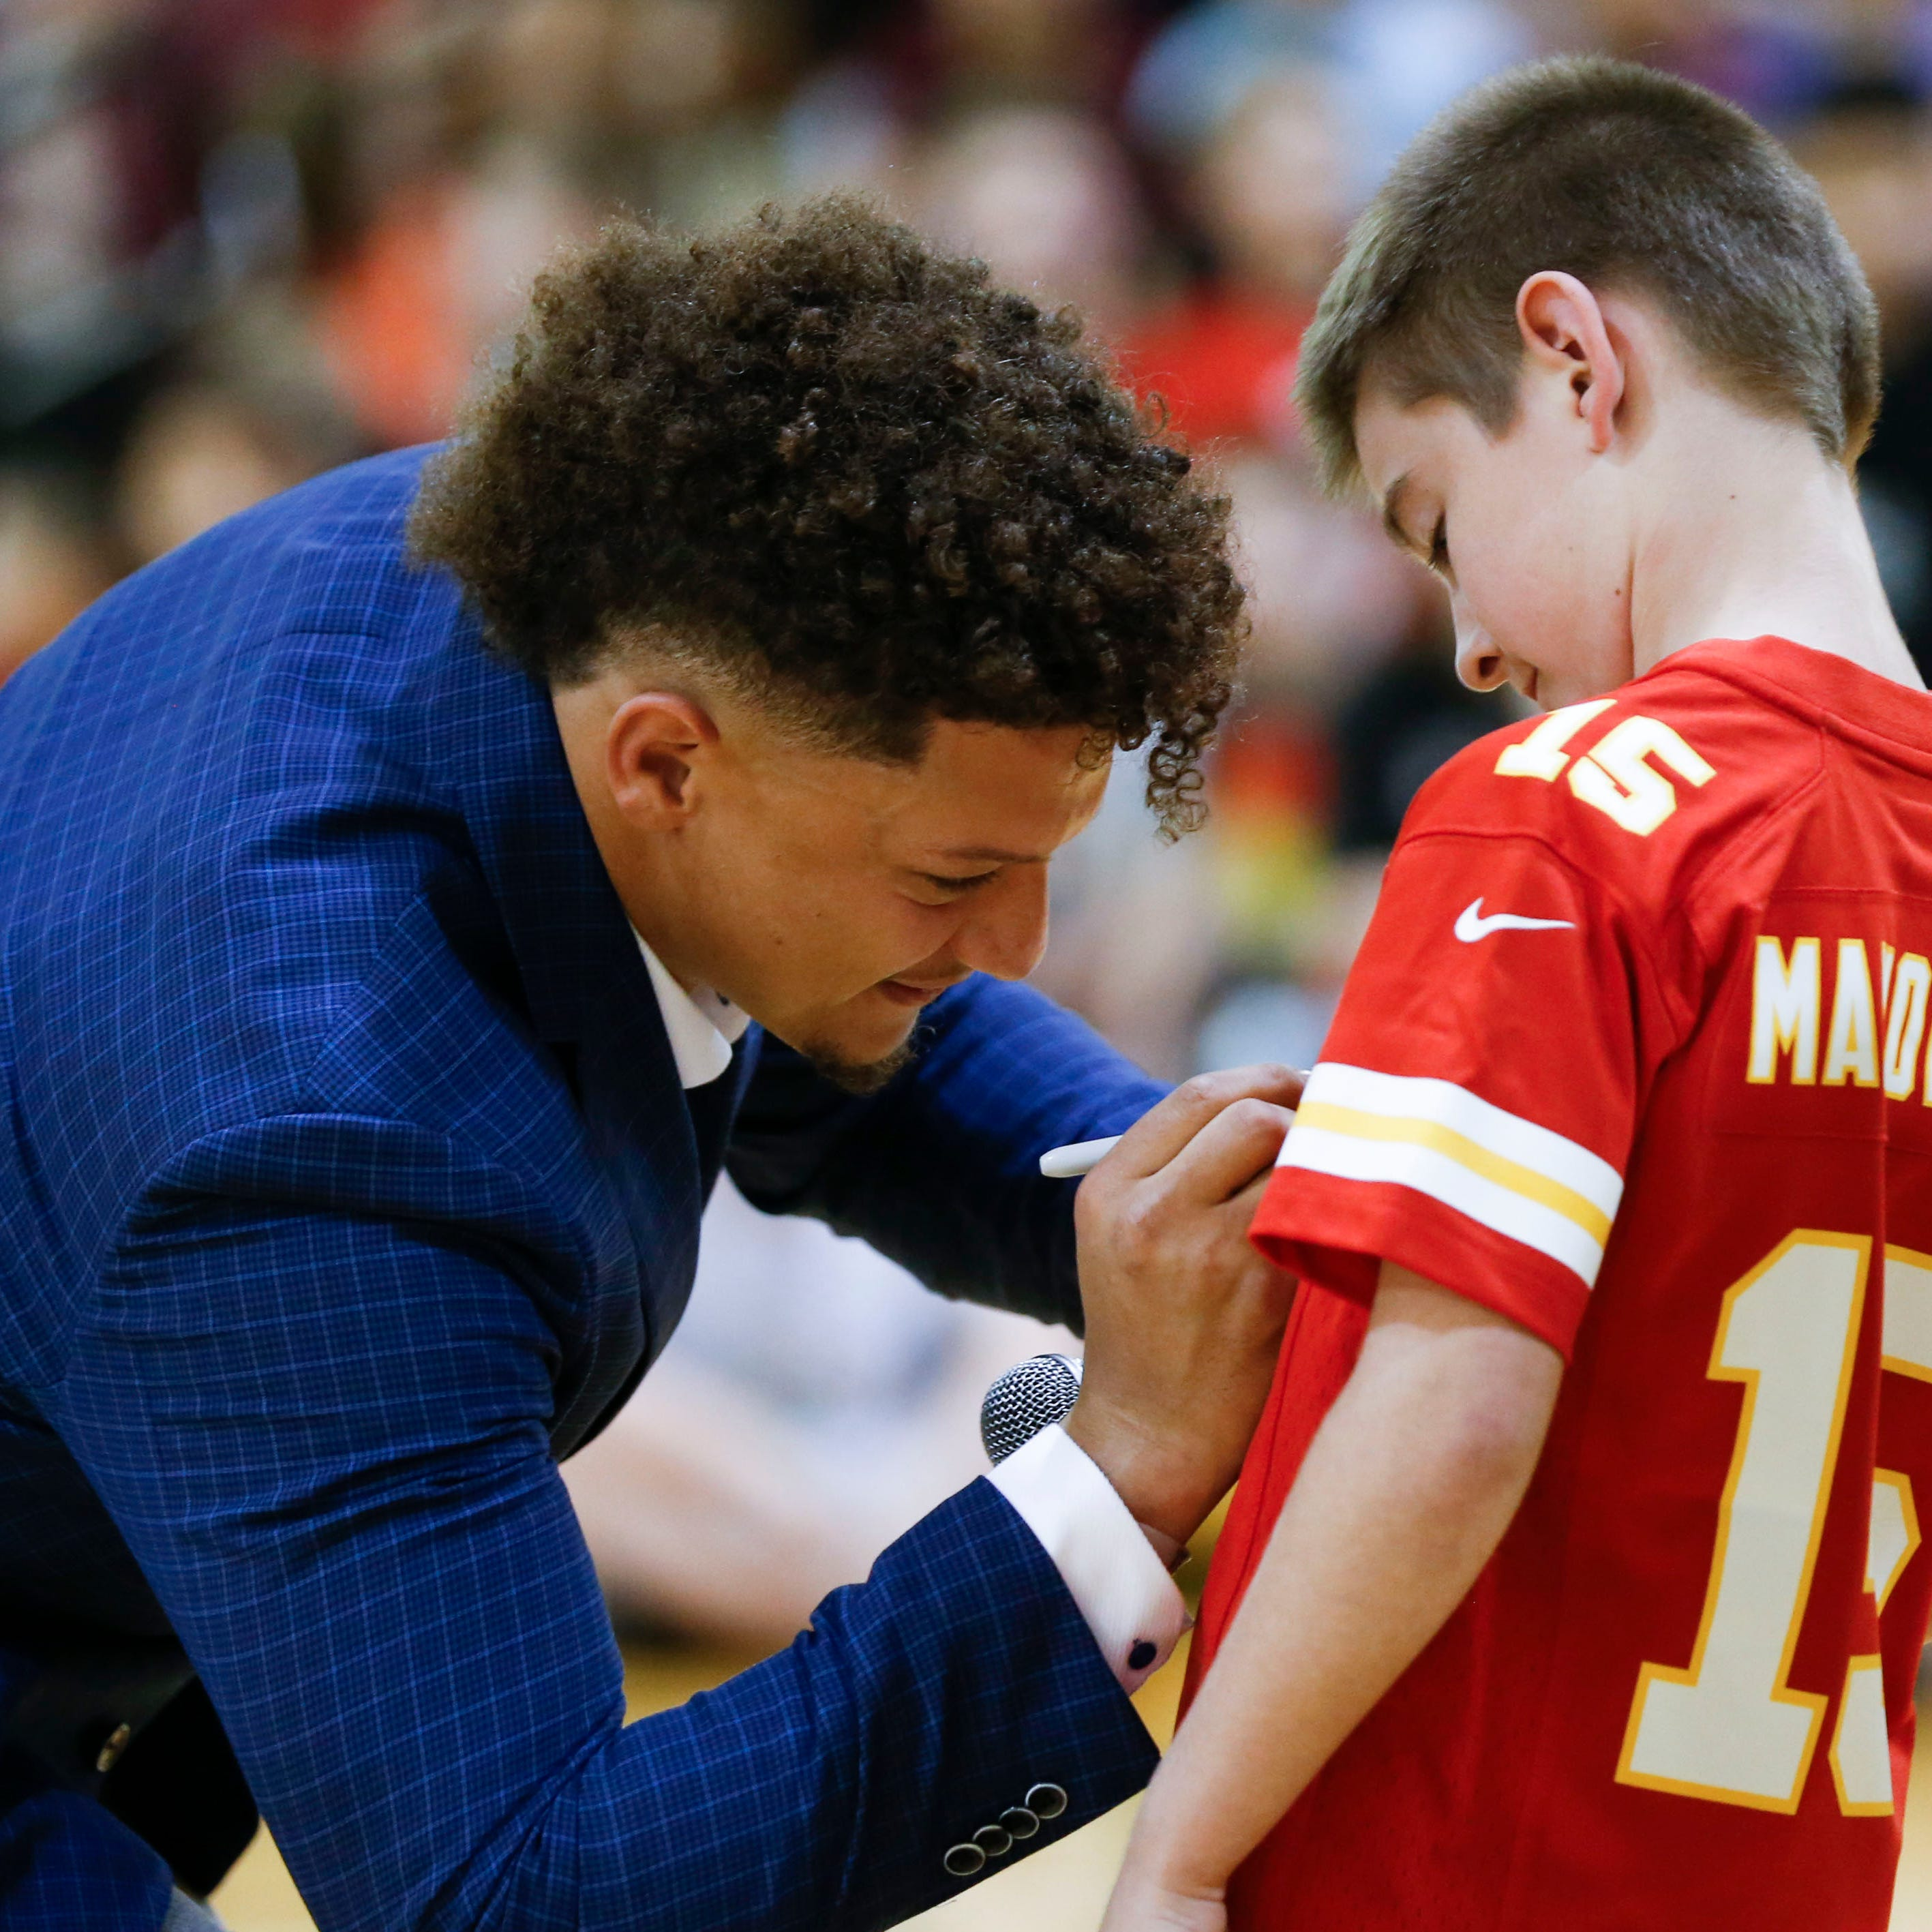 'Crazy' offseason tour lands Chiefs quarterback Patrick Mahomes in Springfield